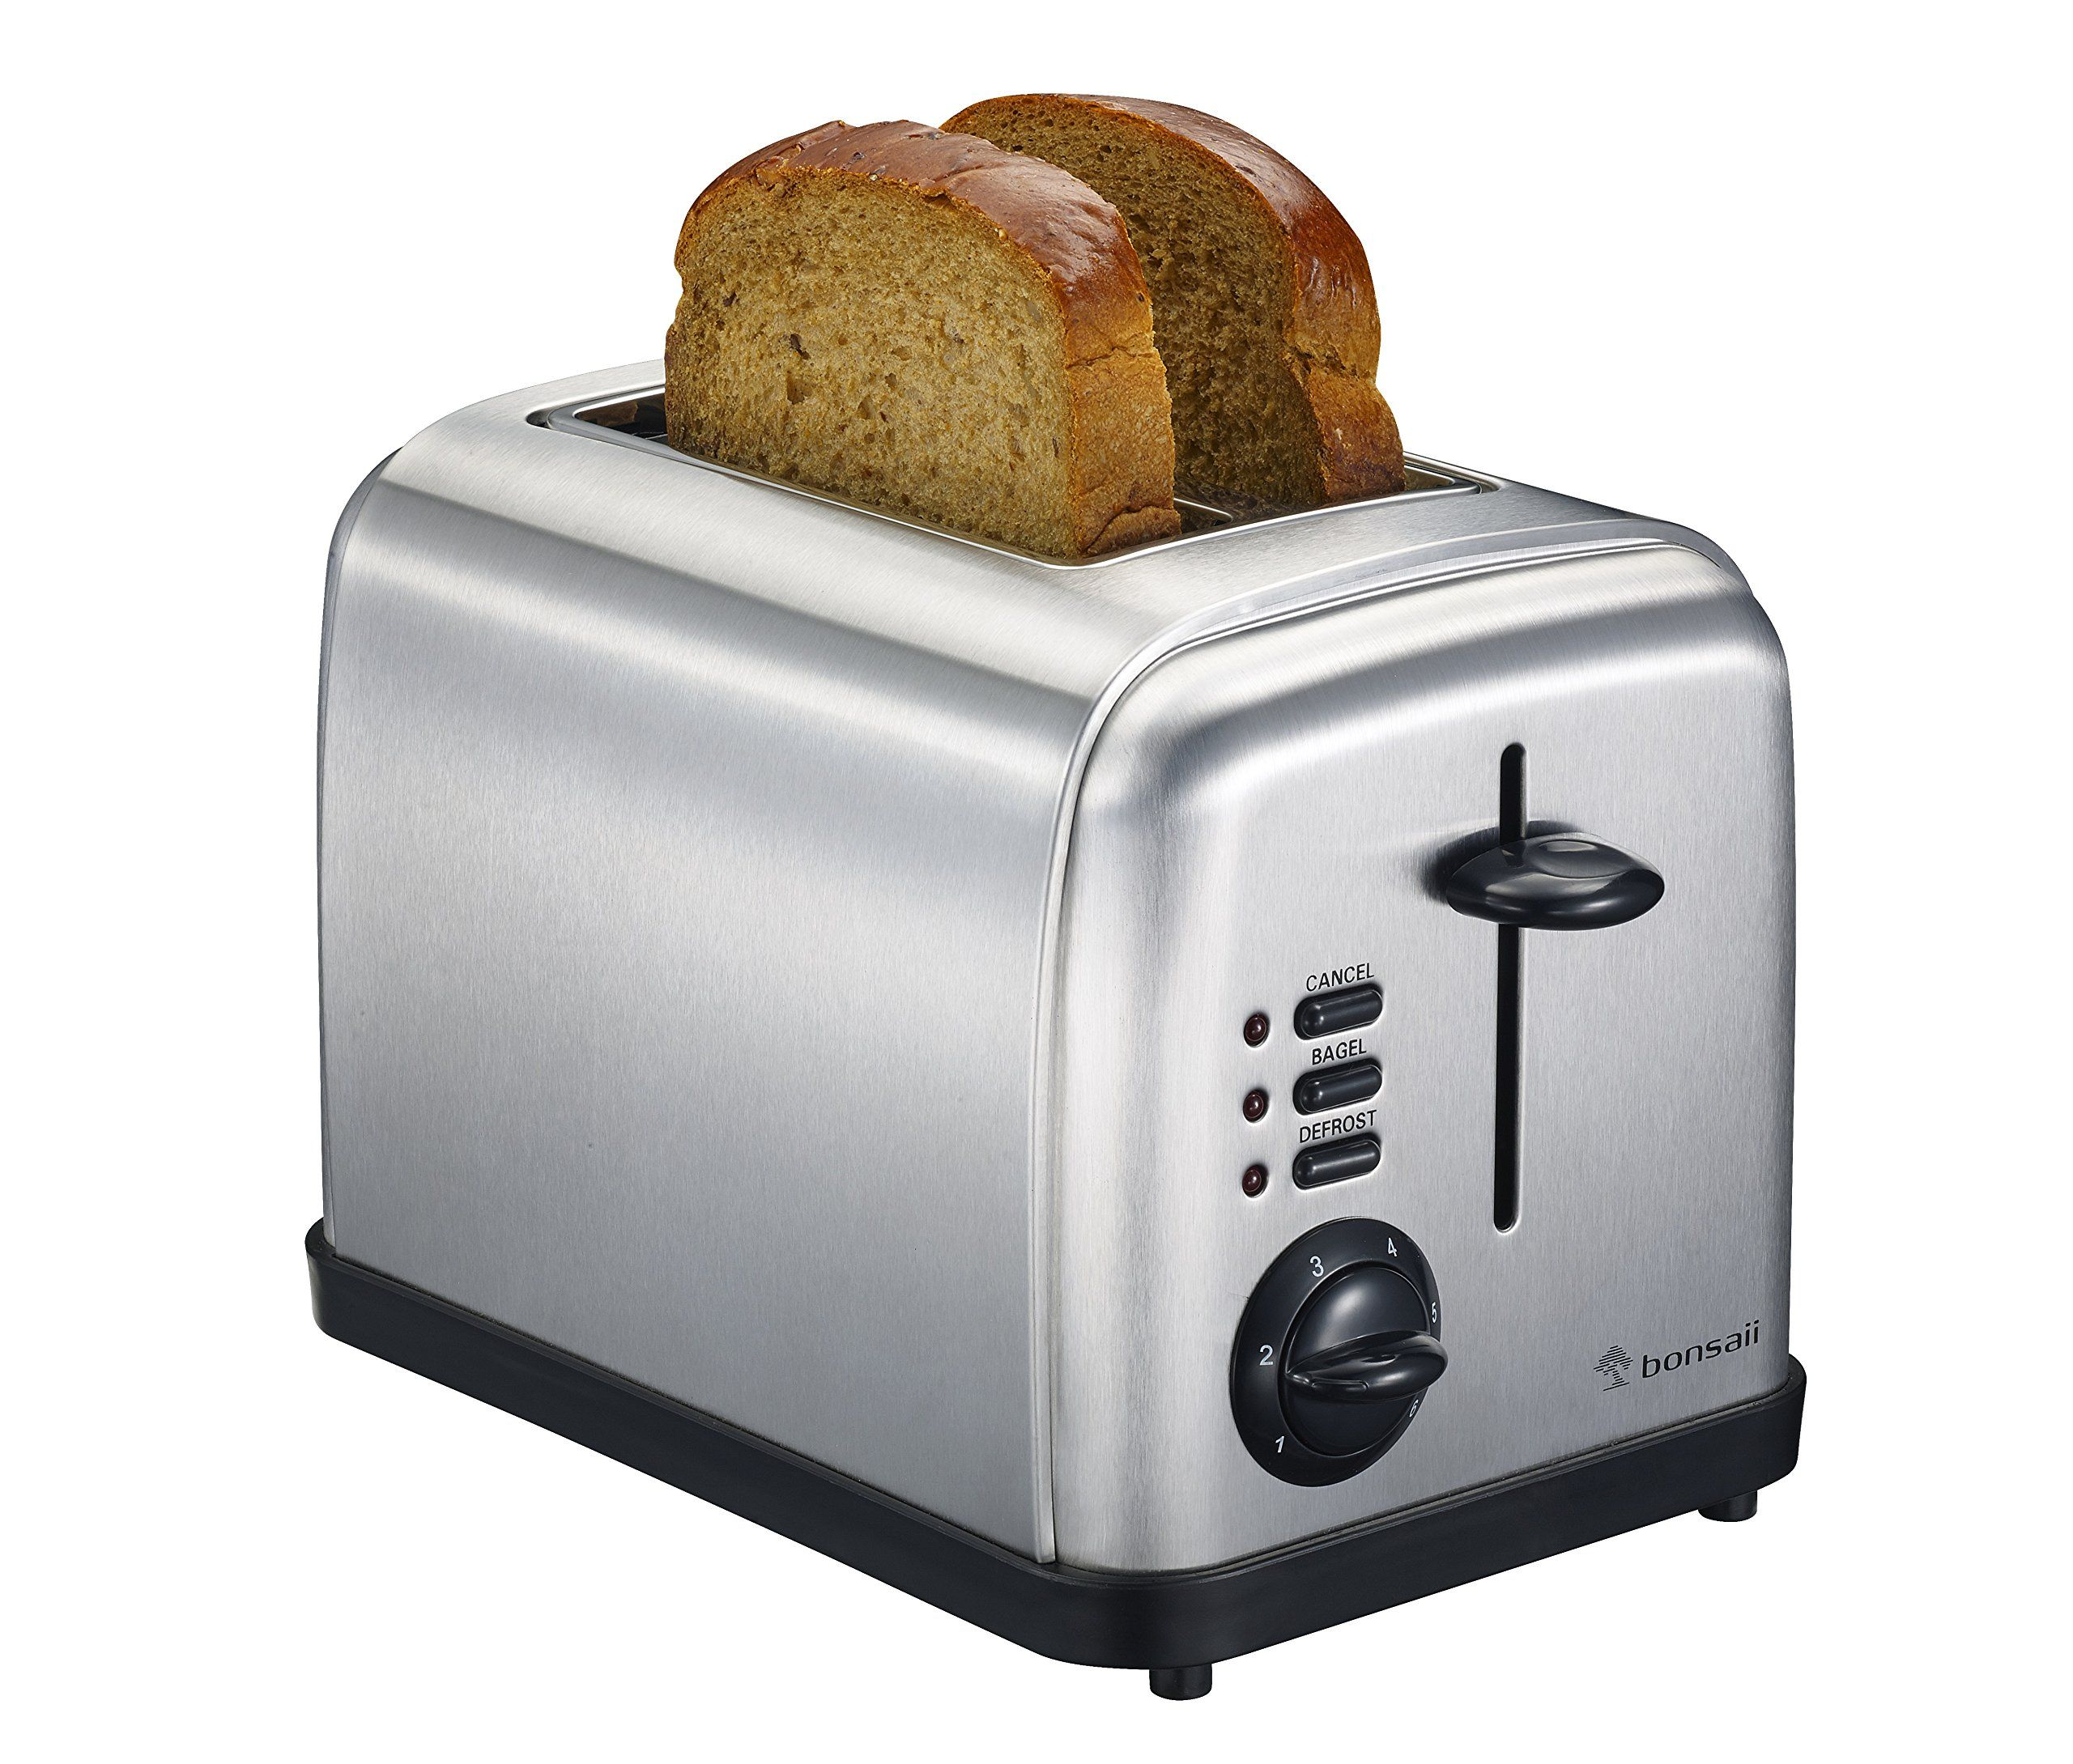 Bonsaii T860 2-Slice Toaster,Bagel Toster,Defrost and Cancel ...